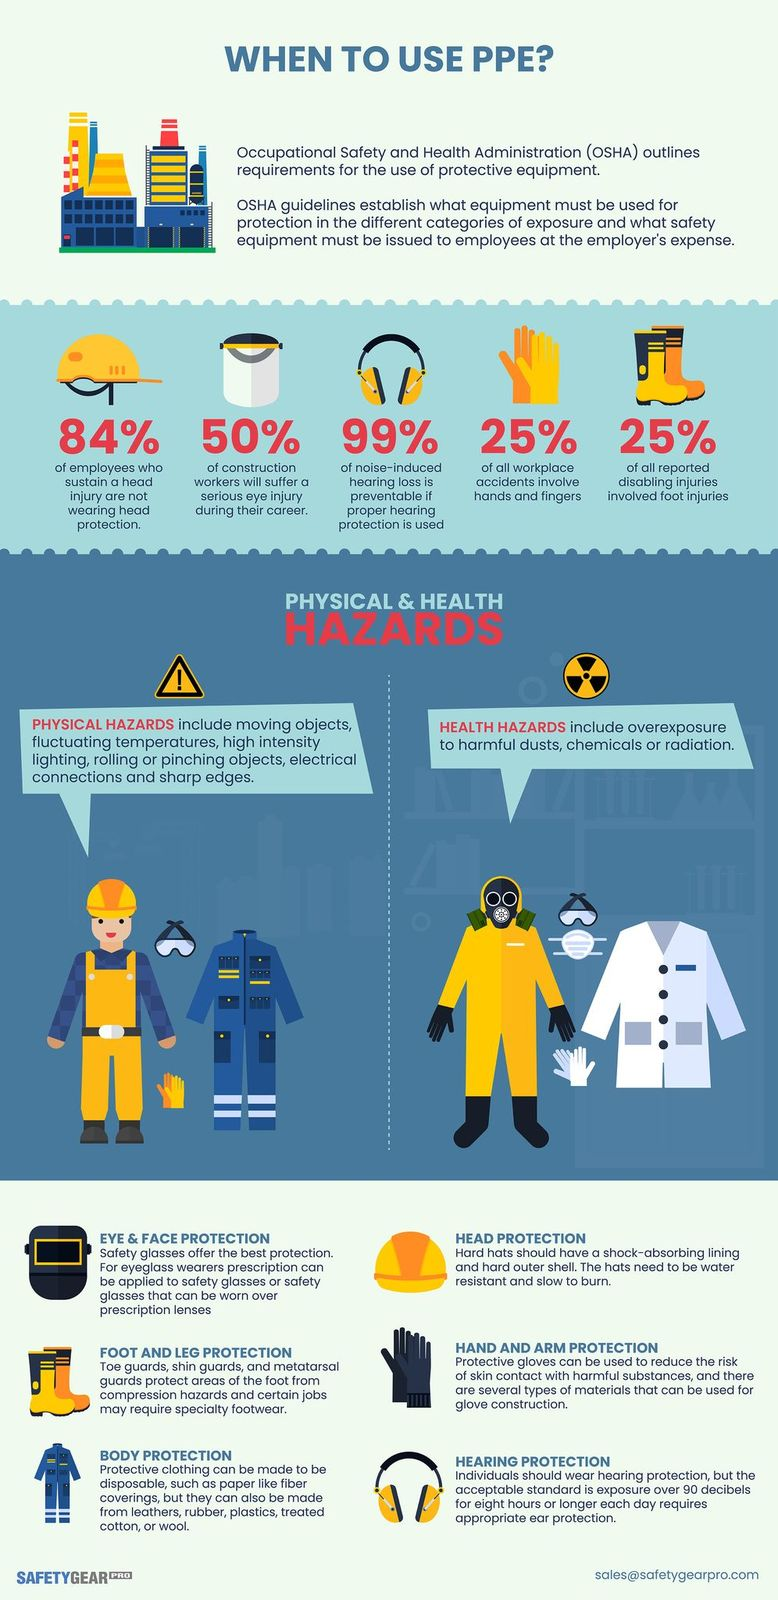 When To Use PPE Infographic